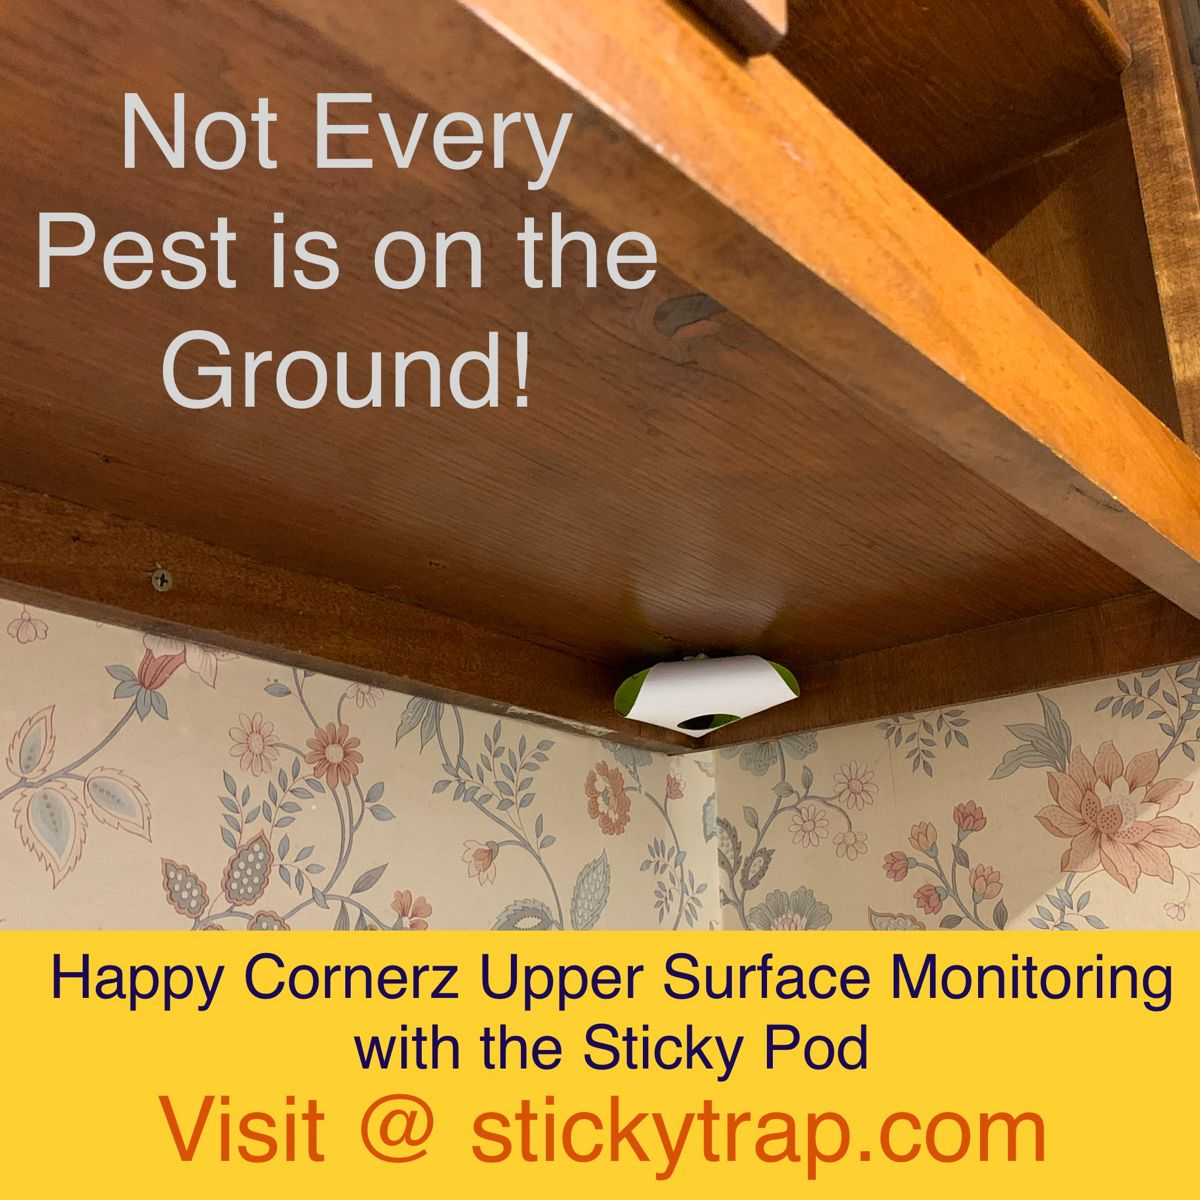 DIY Upper Surface Monitoring for Roaches, Ants, Spiders